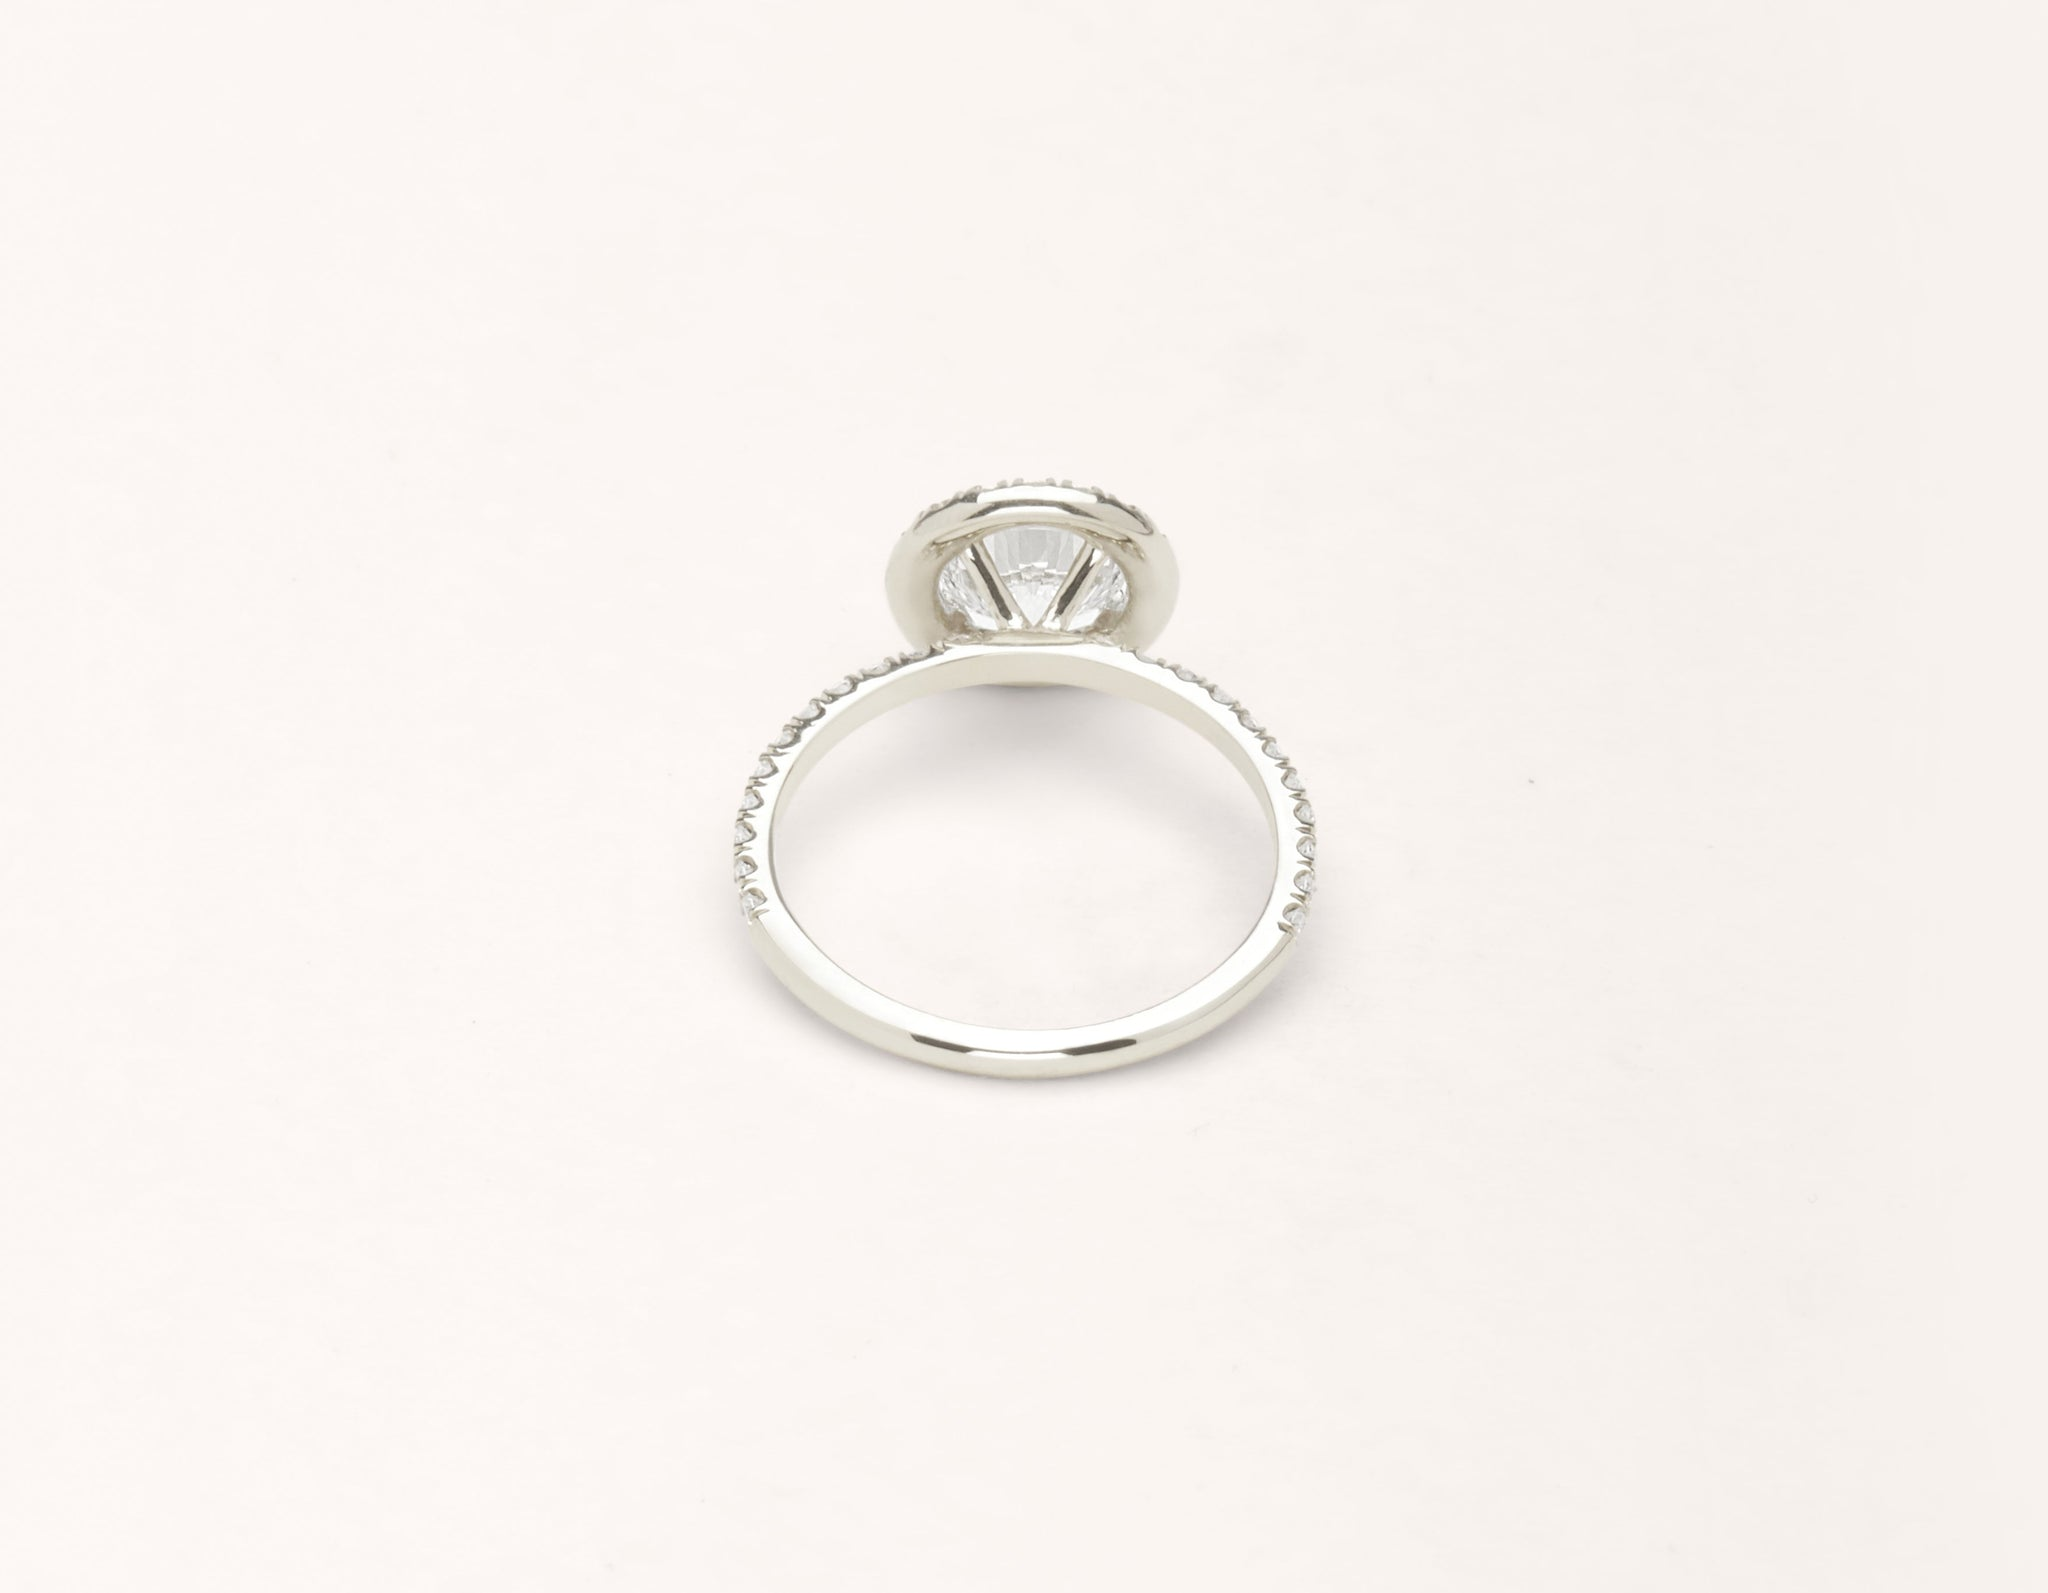 Vrai & Oro 18k solid white gold Diamond engagement ring The Halo pave simple classic band